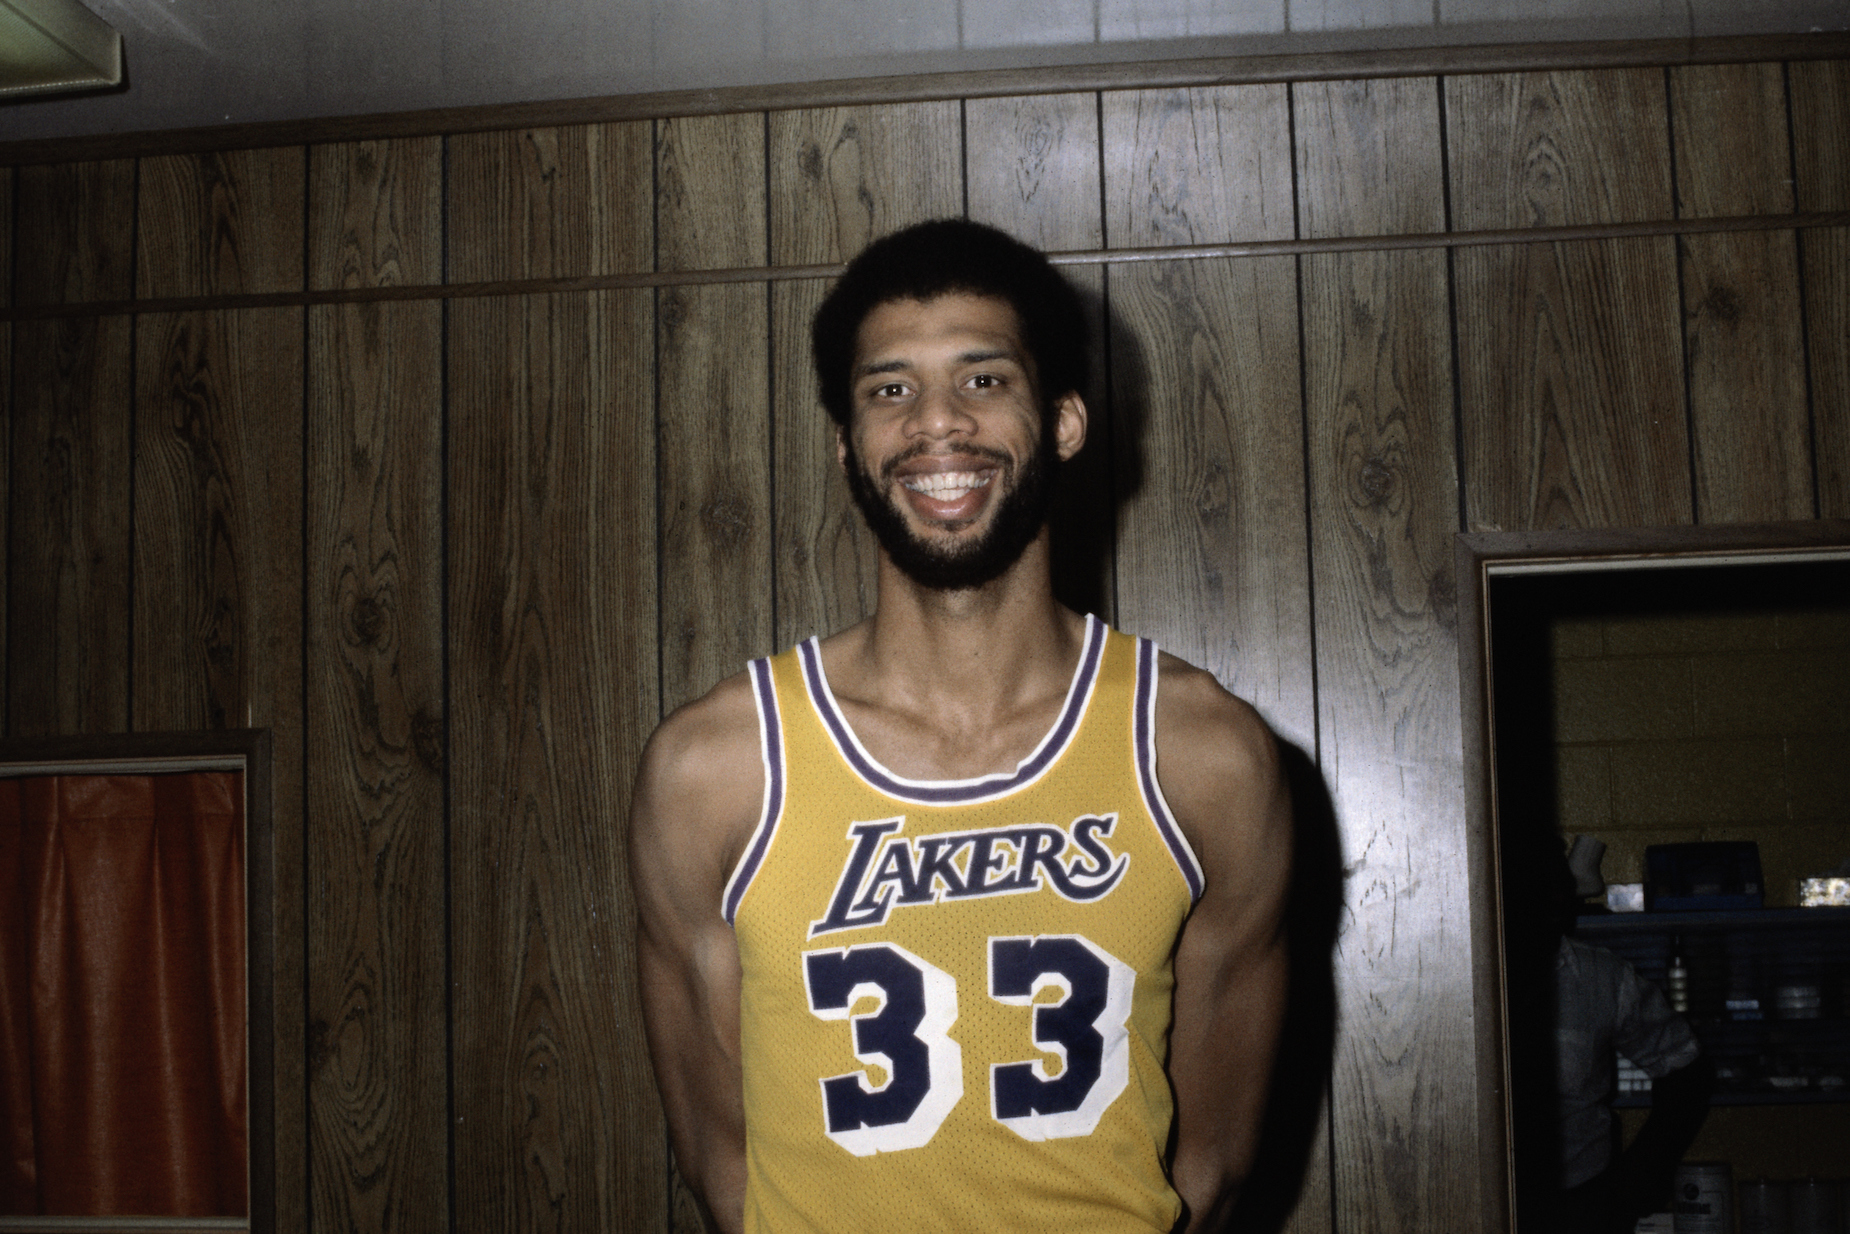 While Kareem Abdul-Jabbar is a living legend, he has some surprising human regrets about his transition to the pros.